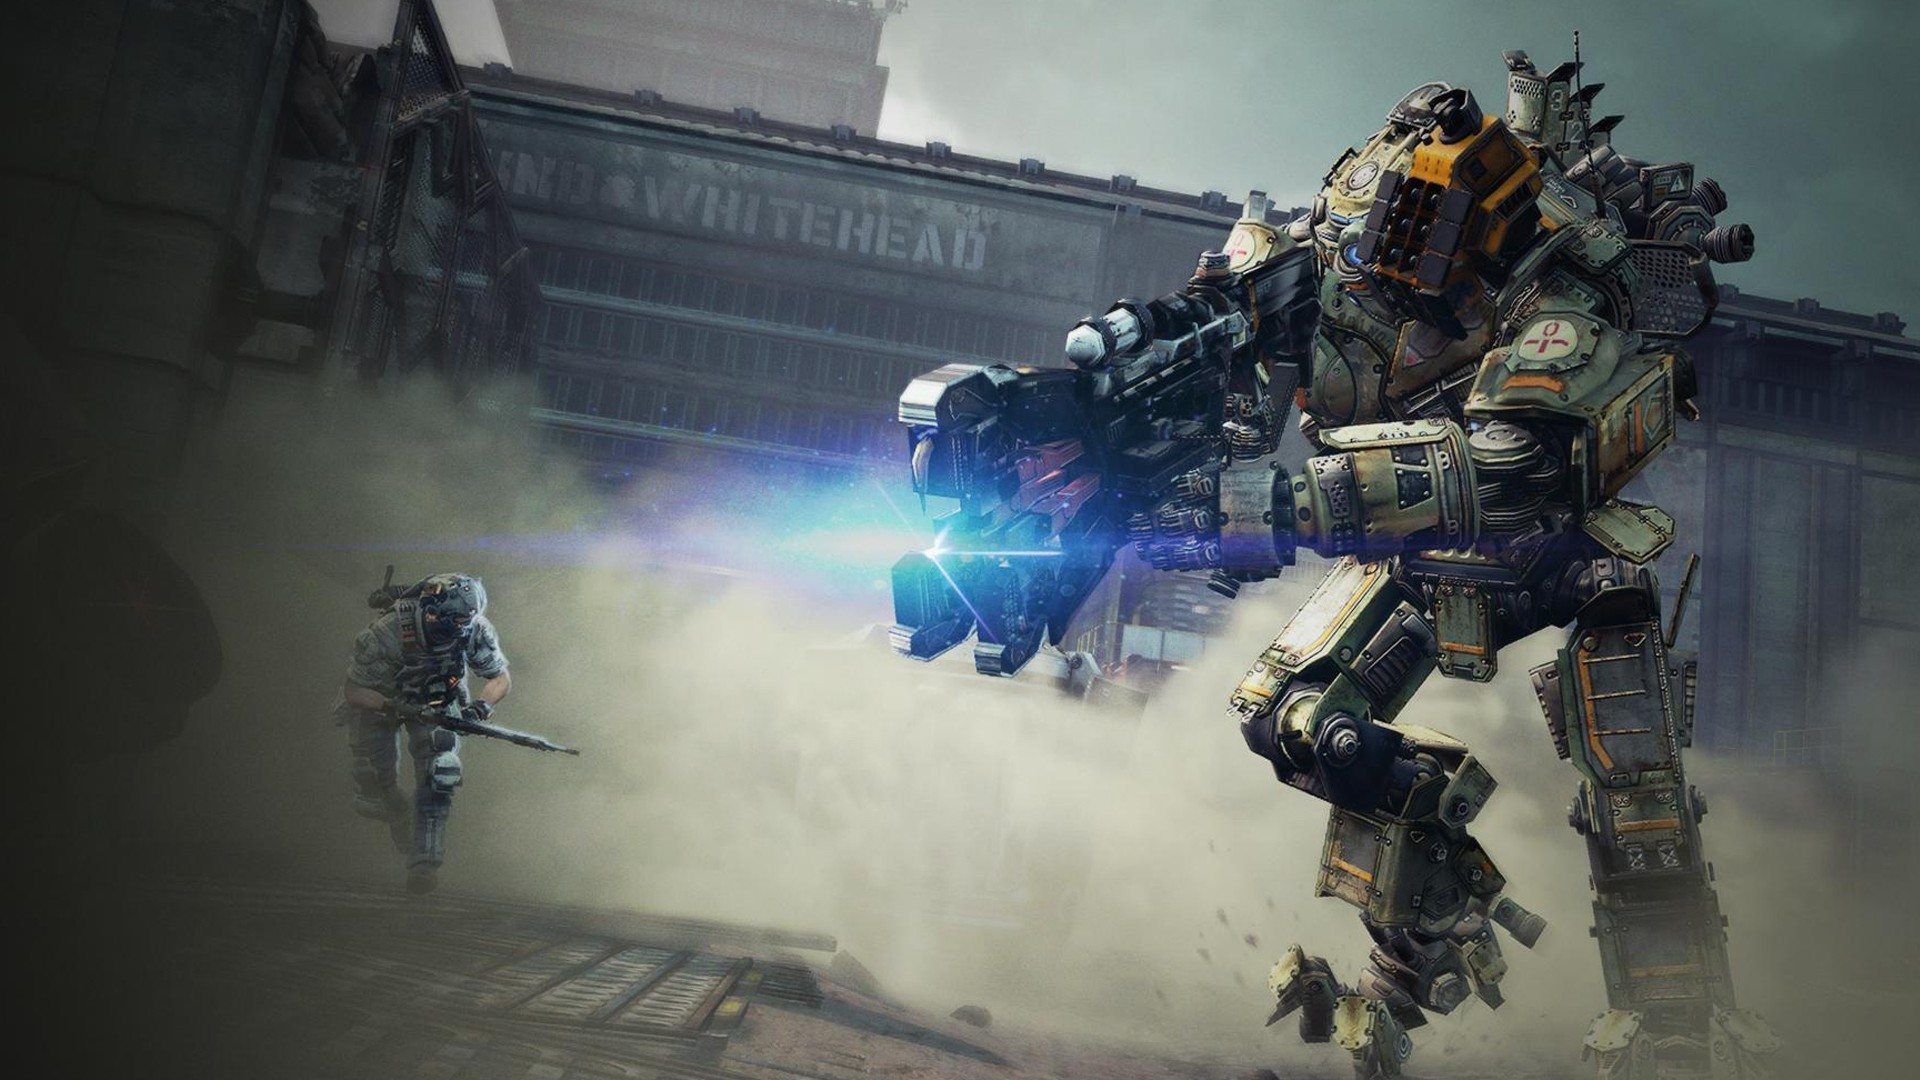 Featuring-a-crafted-single-player-campaign-Titanfall-is-all-about-epic-mech-combat-Titanfall-c-wallpaper-wpc9004892